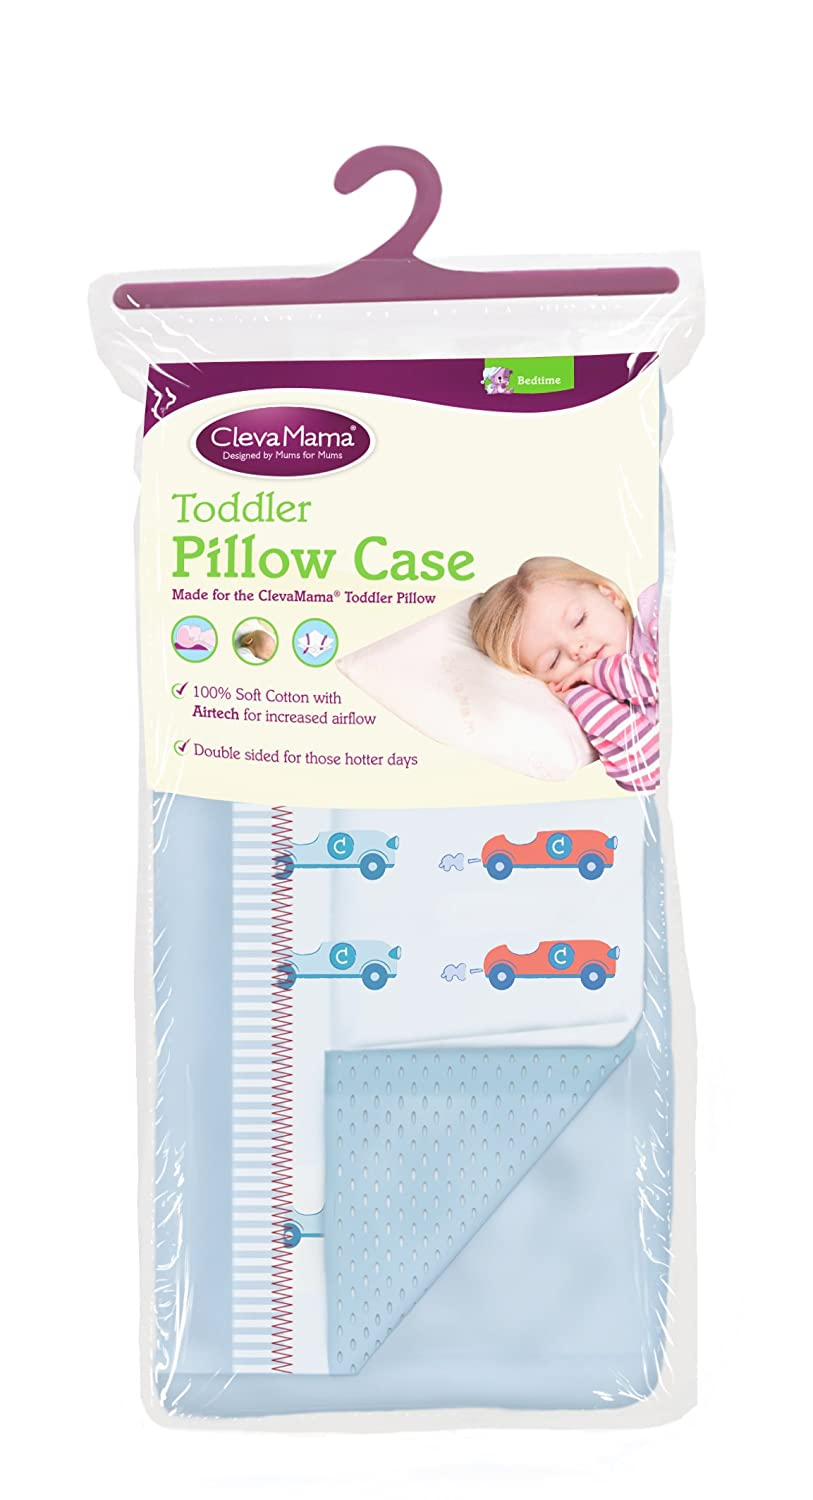 Clevamama Replacement Toddler Pillow Case (Blue) 7509